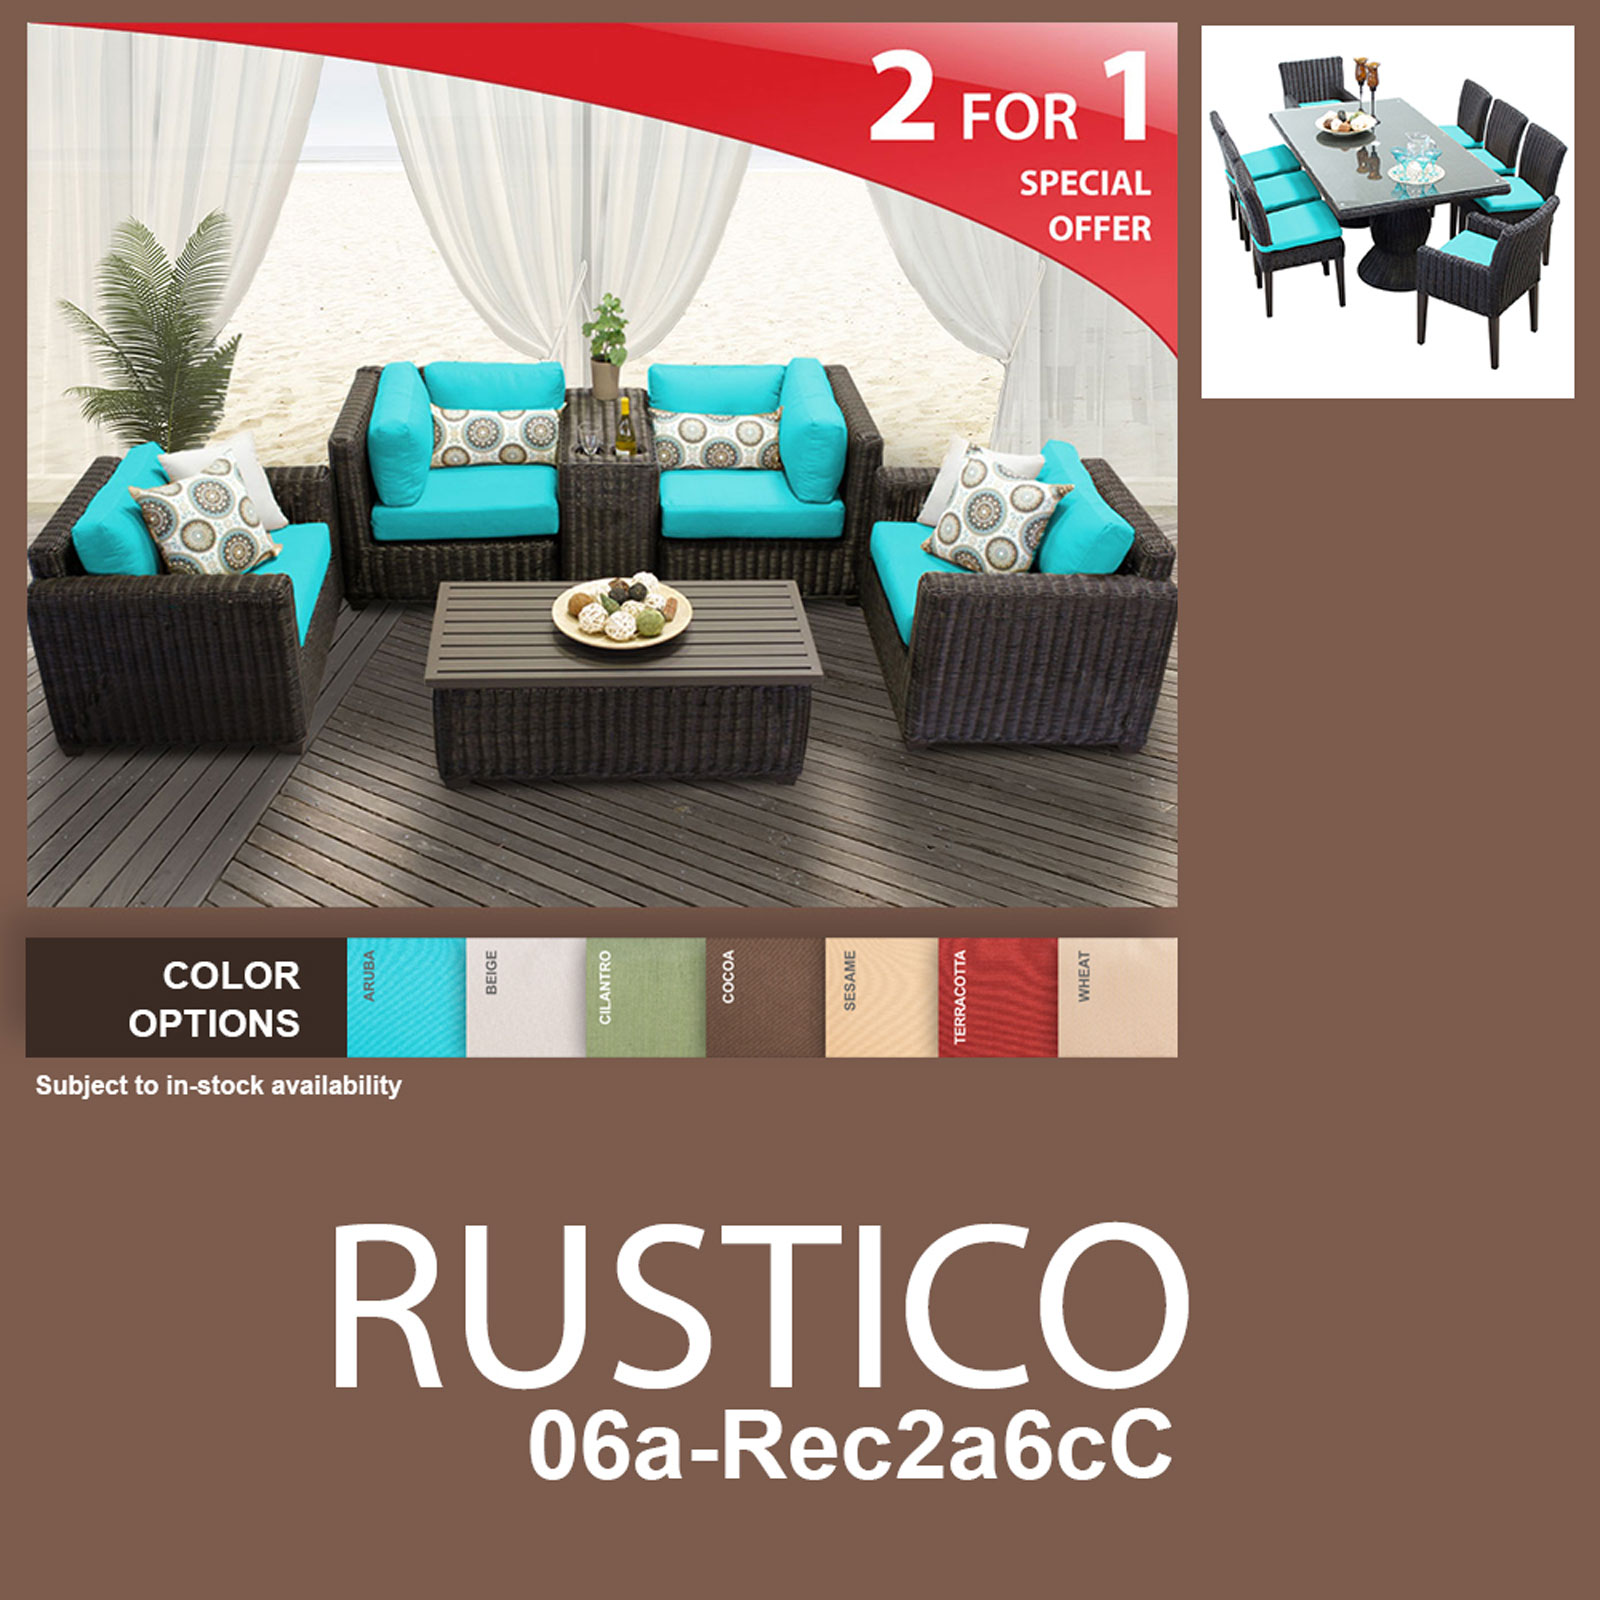 Rustico 15 Piece Outdoor Wicker Patio Furniture Package RUSTICO-06a-Rec2a6cC - Design Furnishings